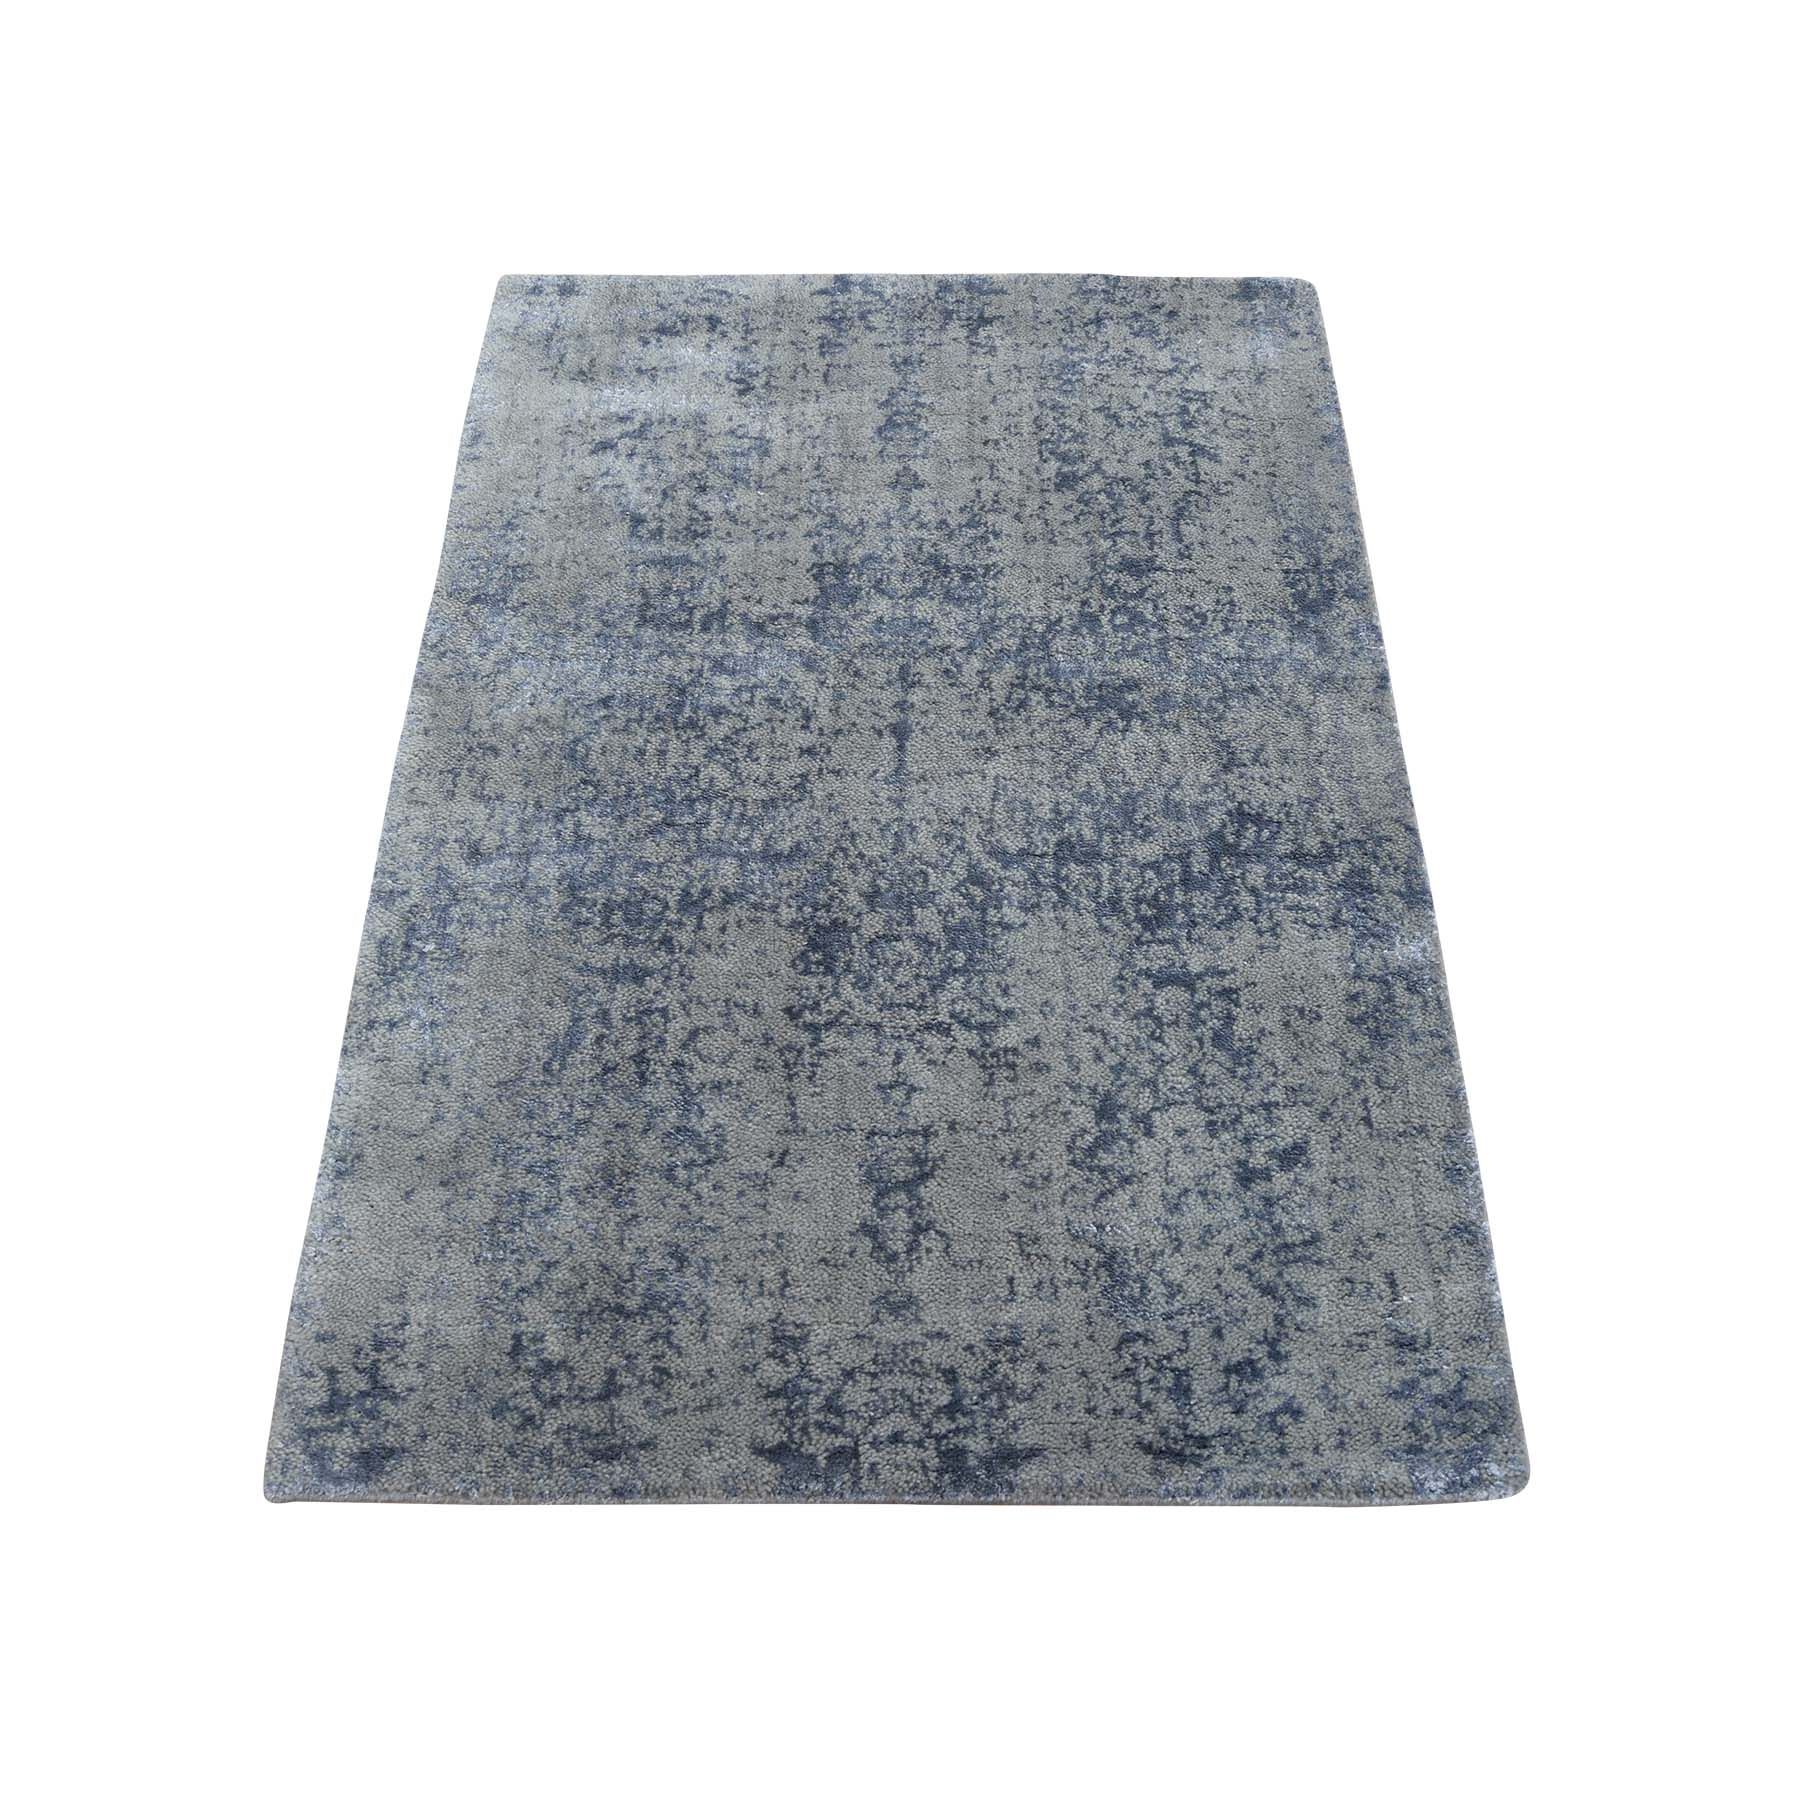 2'X3' Abstract Design Tone On Tone Wool And Silk Hand-Loomed Oriental Rug moac97da